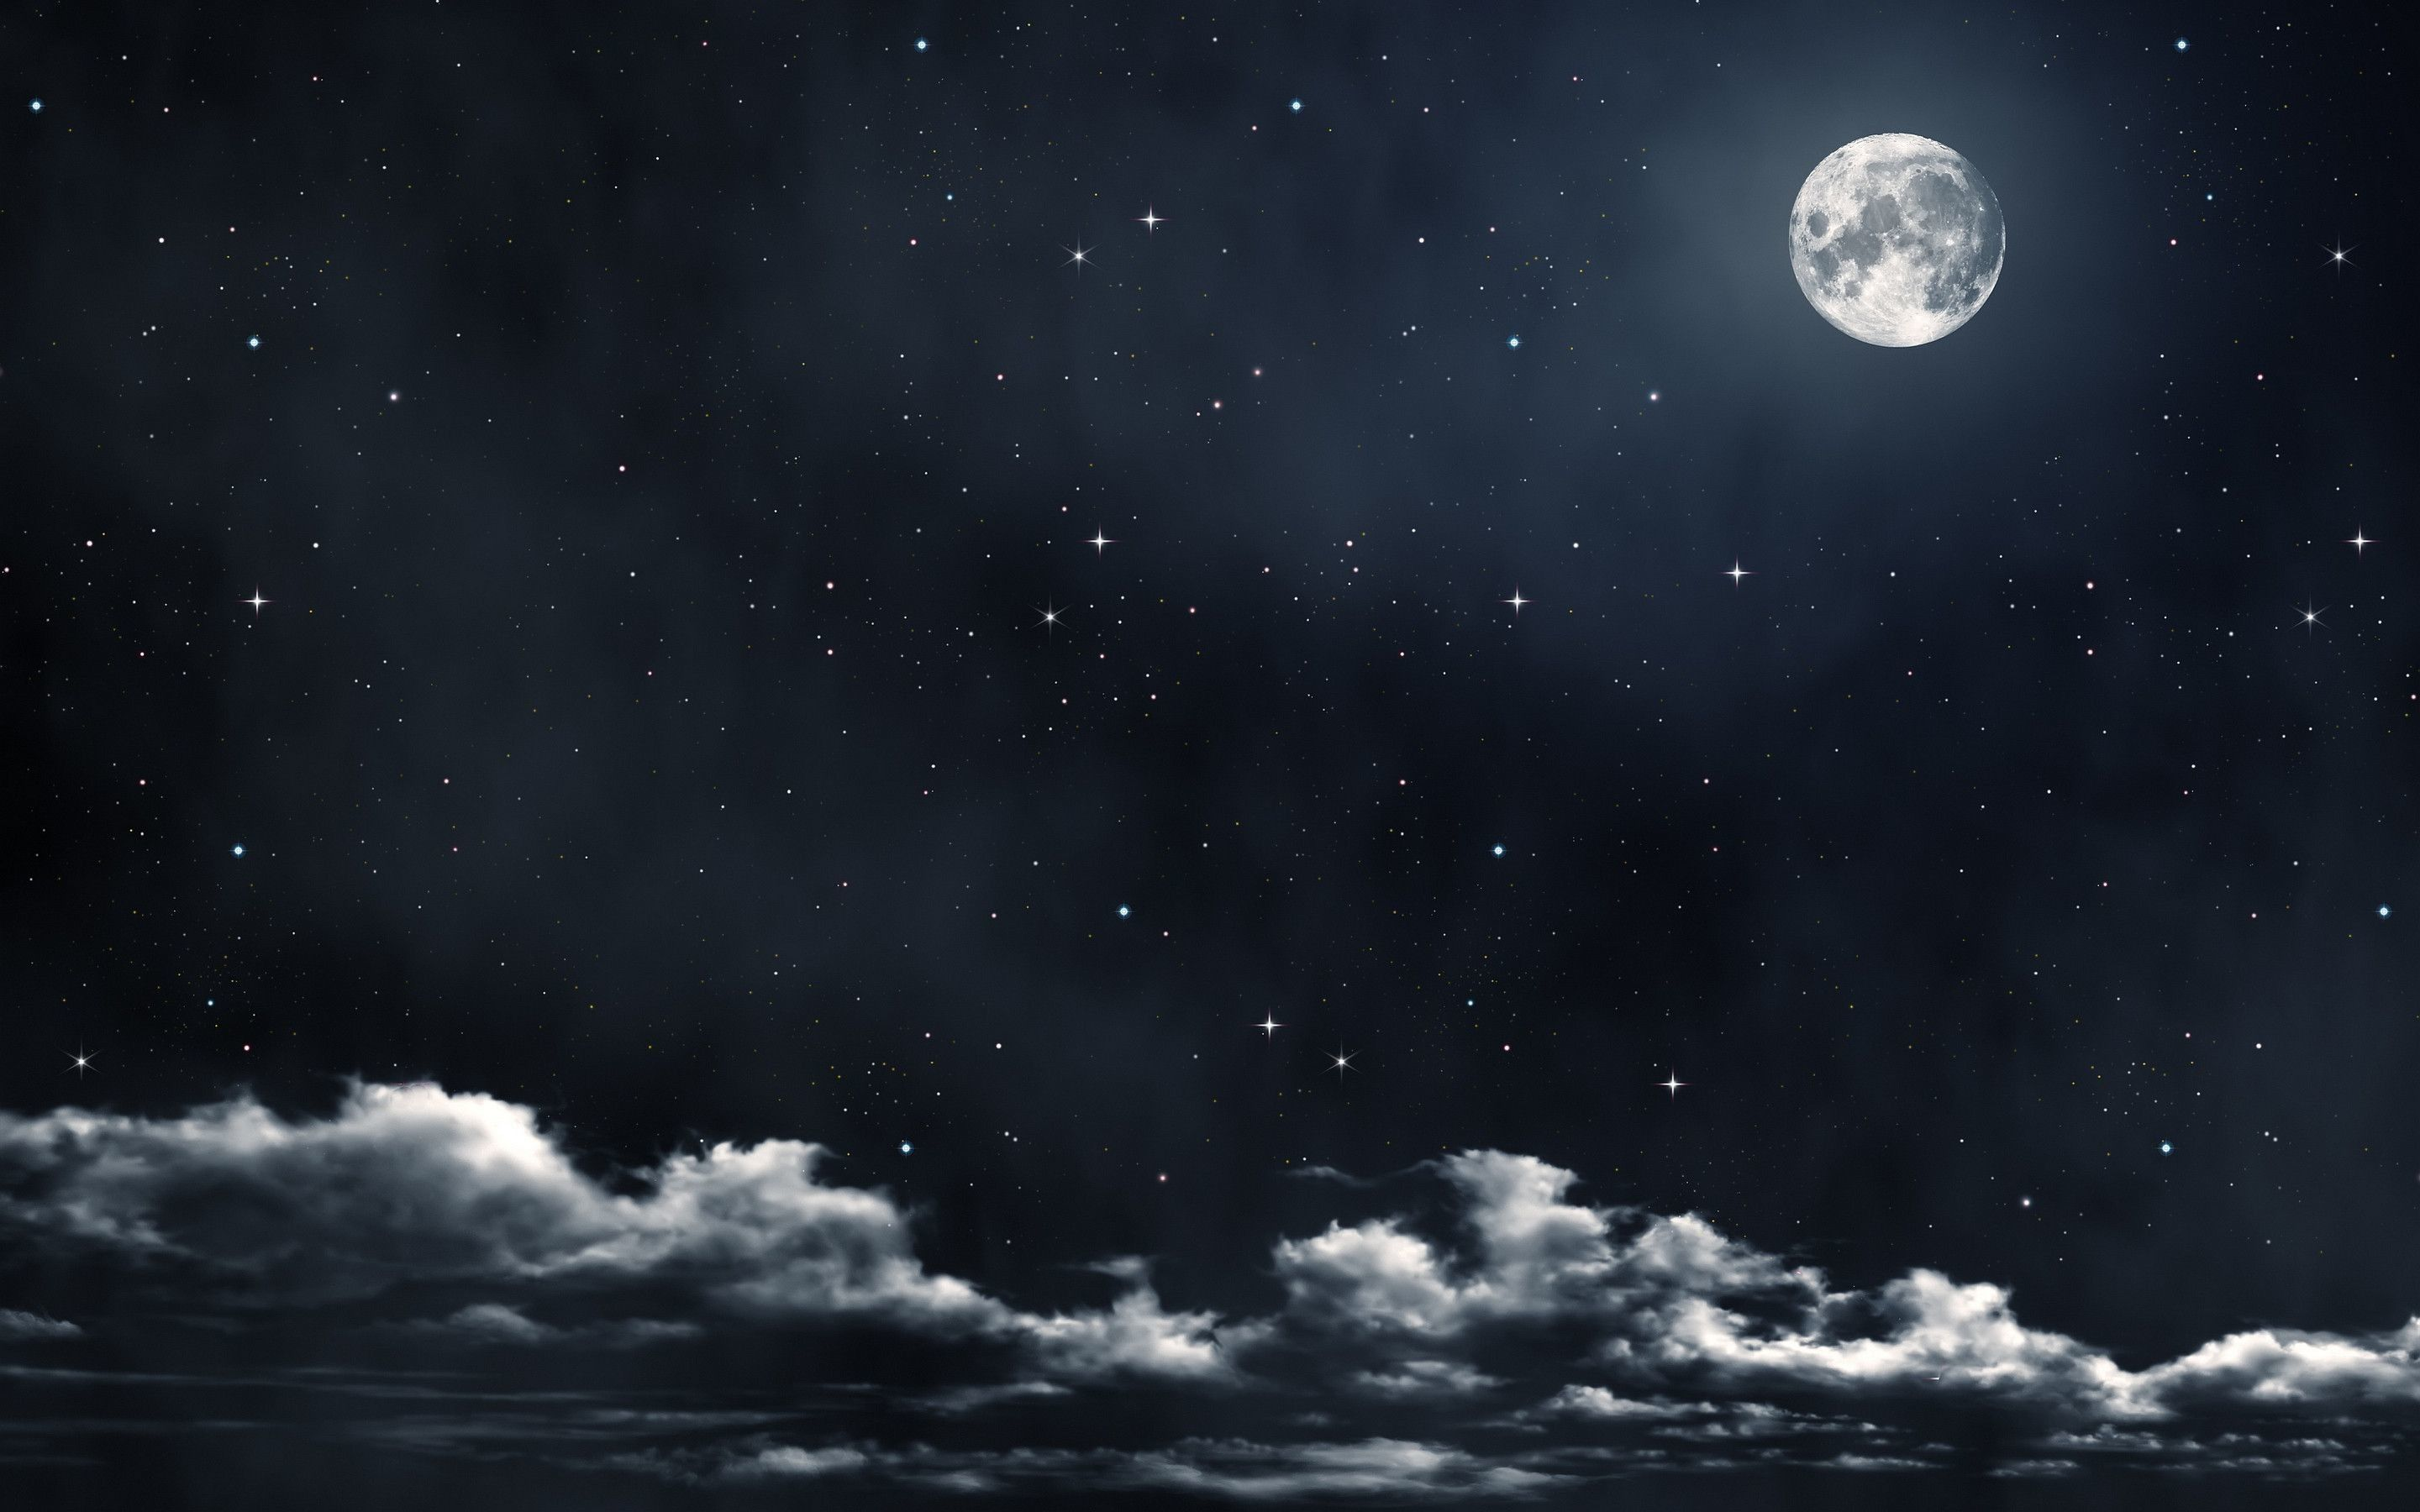 Moon and Stars Wallpapers   Top Moon and Stars Backgrounds 2880x1800